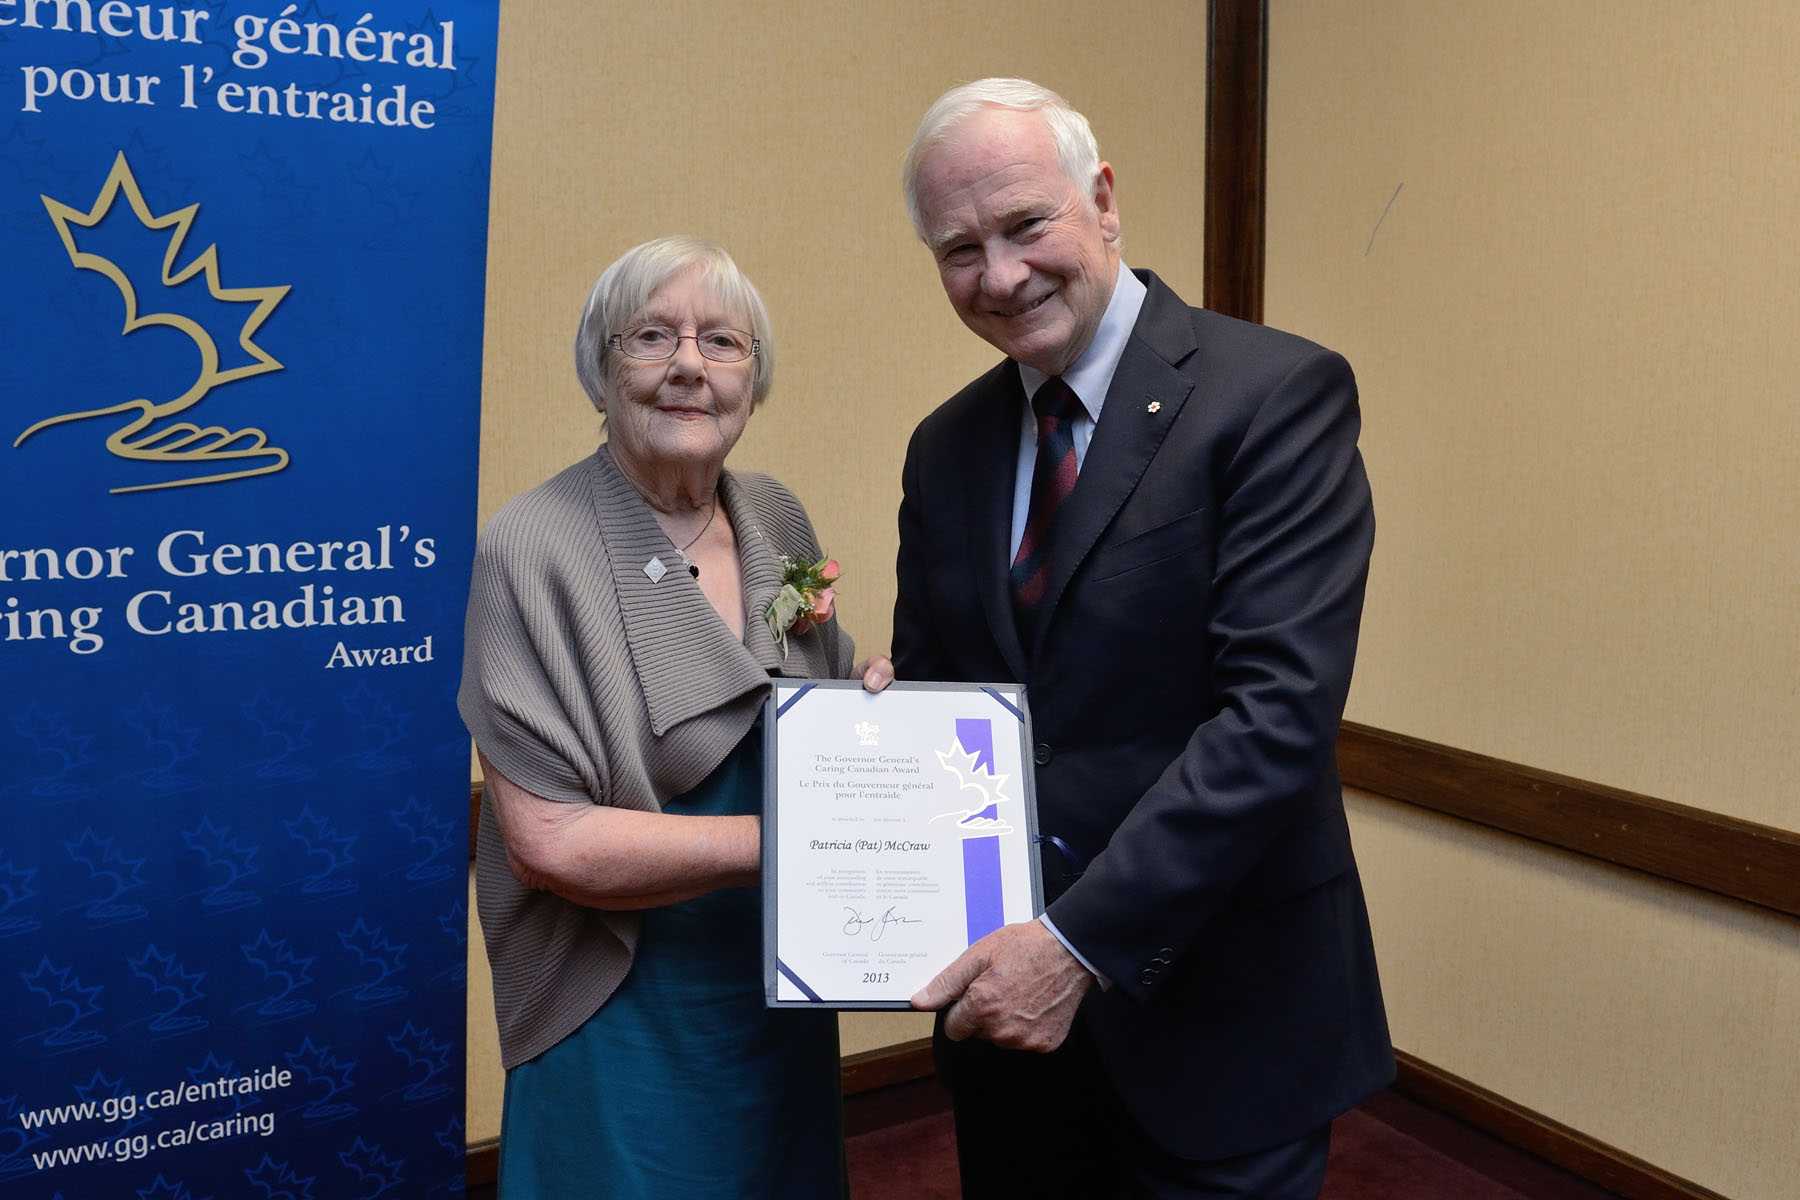 His Excellency presented the Governor General's Caring Canadian Award to Patricia McCraw from Guelph, Ontario, during a ceremony at the Waterloo Inn. At 84 years old, Patricia McCraw is still deeply committed to the betterment of her community. A volunteer for the past 50 years, she was a founding member of the Guelph Women of Distinction Awards, the Guelph Community Foundation, and the Guelph chapter of the Canadian Federation of University Women. She is also a past president of Family and Children's Services of Guelph and Wellington County, and of the national board of Save the Children Canada. She is also committed to advancing the status of women, serving the Zonta Club of Guelph for 31 years. She was a public member of the Ontario College of Pharmacists.